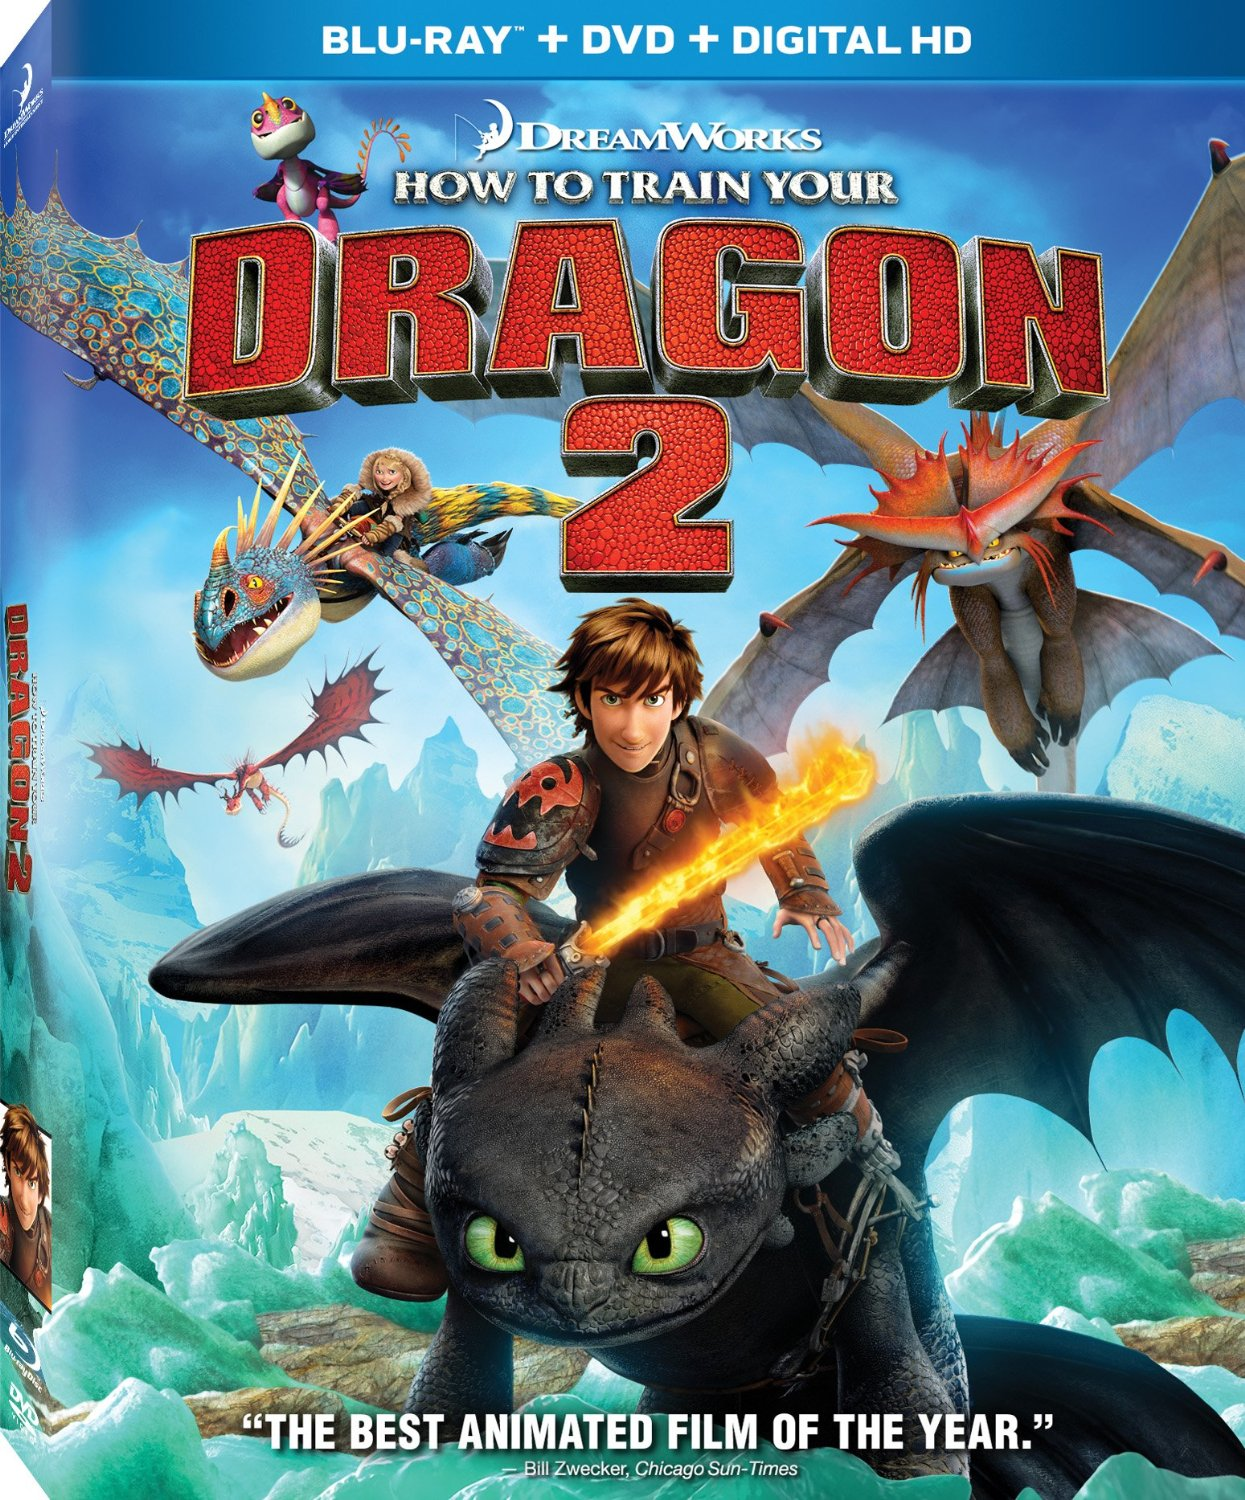 """how to train your dragon critic Soundtrack review: how to train your dragon march 23, 2010 0 jørn tillnes how to train your dragon soundtrack review: this is a review of the how to train your dragon soundtrack by john powell """"this is one of john powell's best scores for an animated movie and he has done a lot"""" read more."""